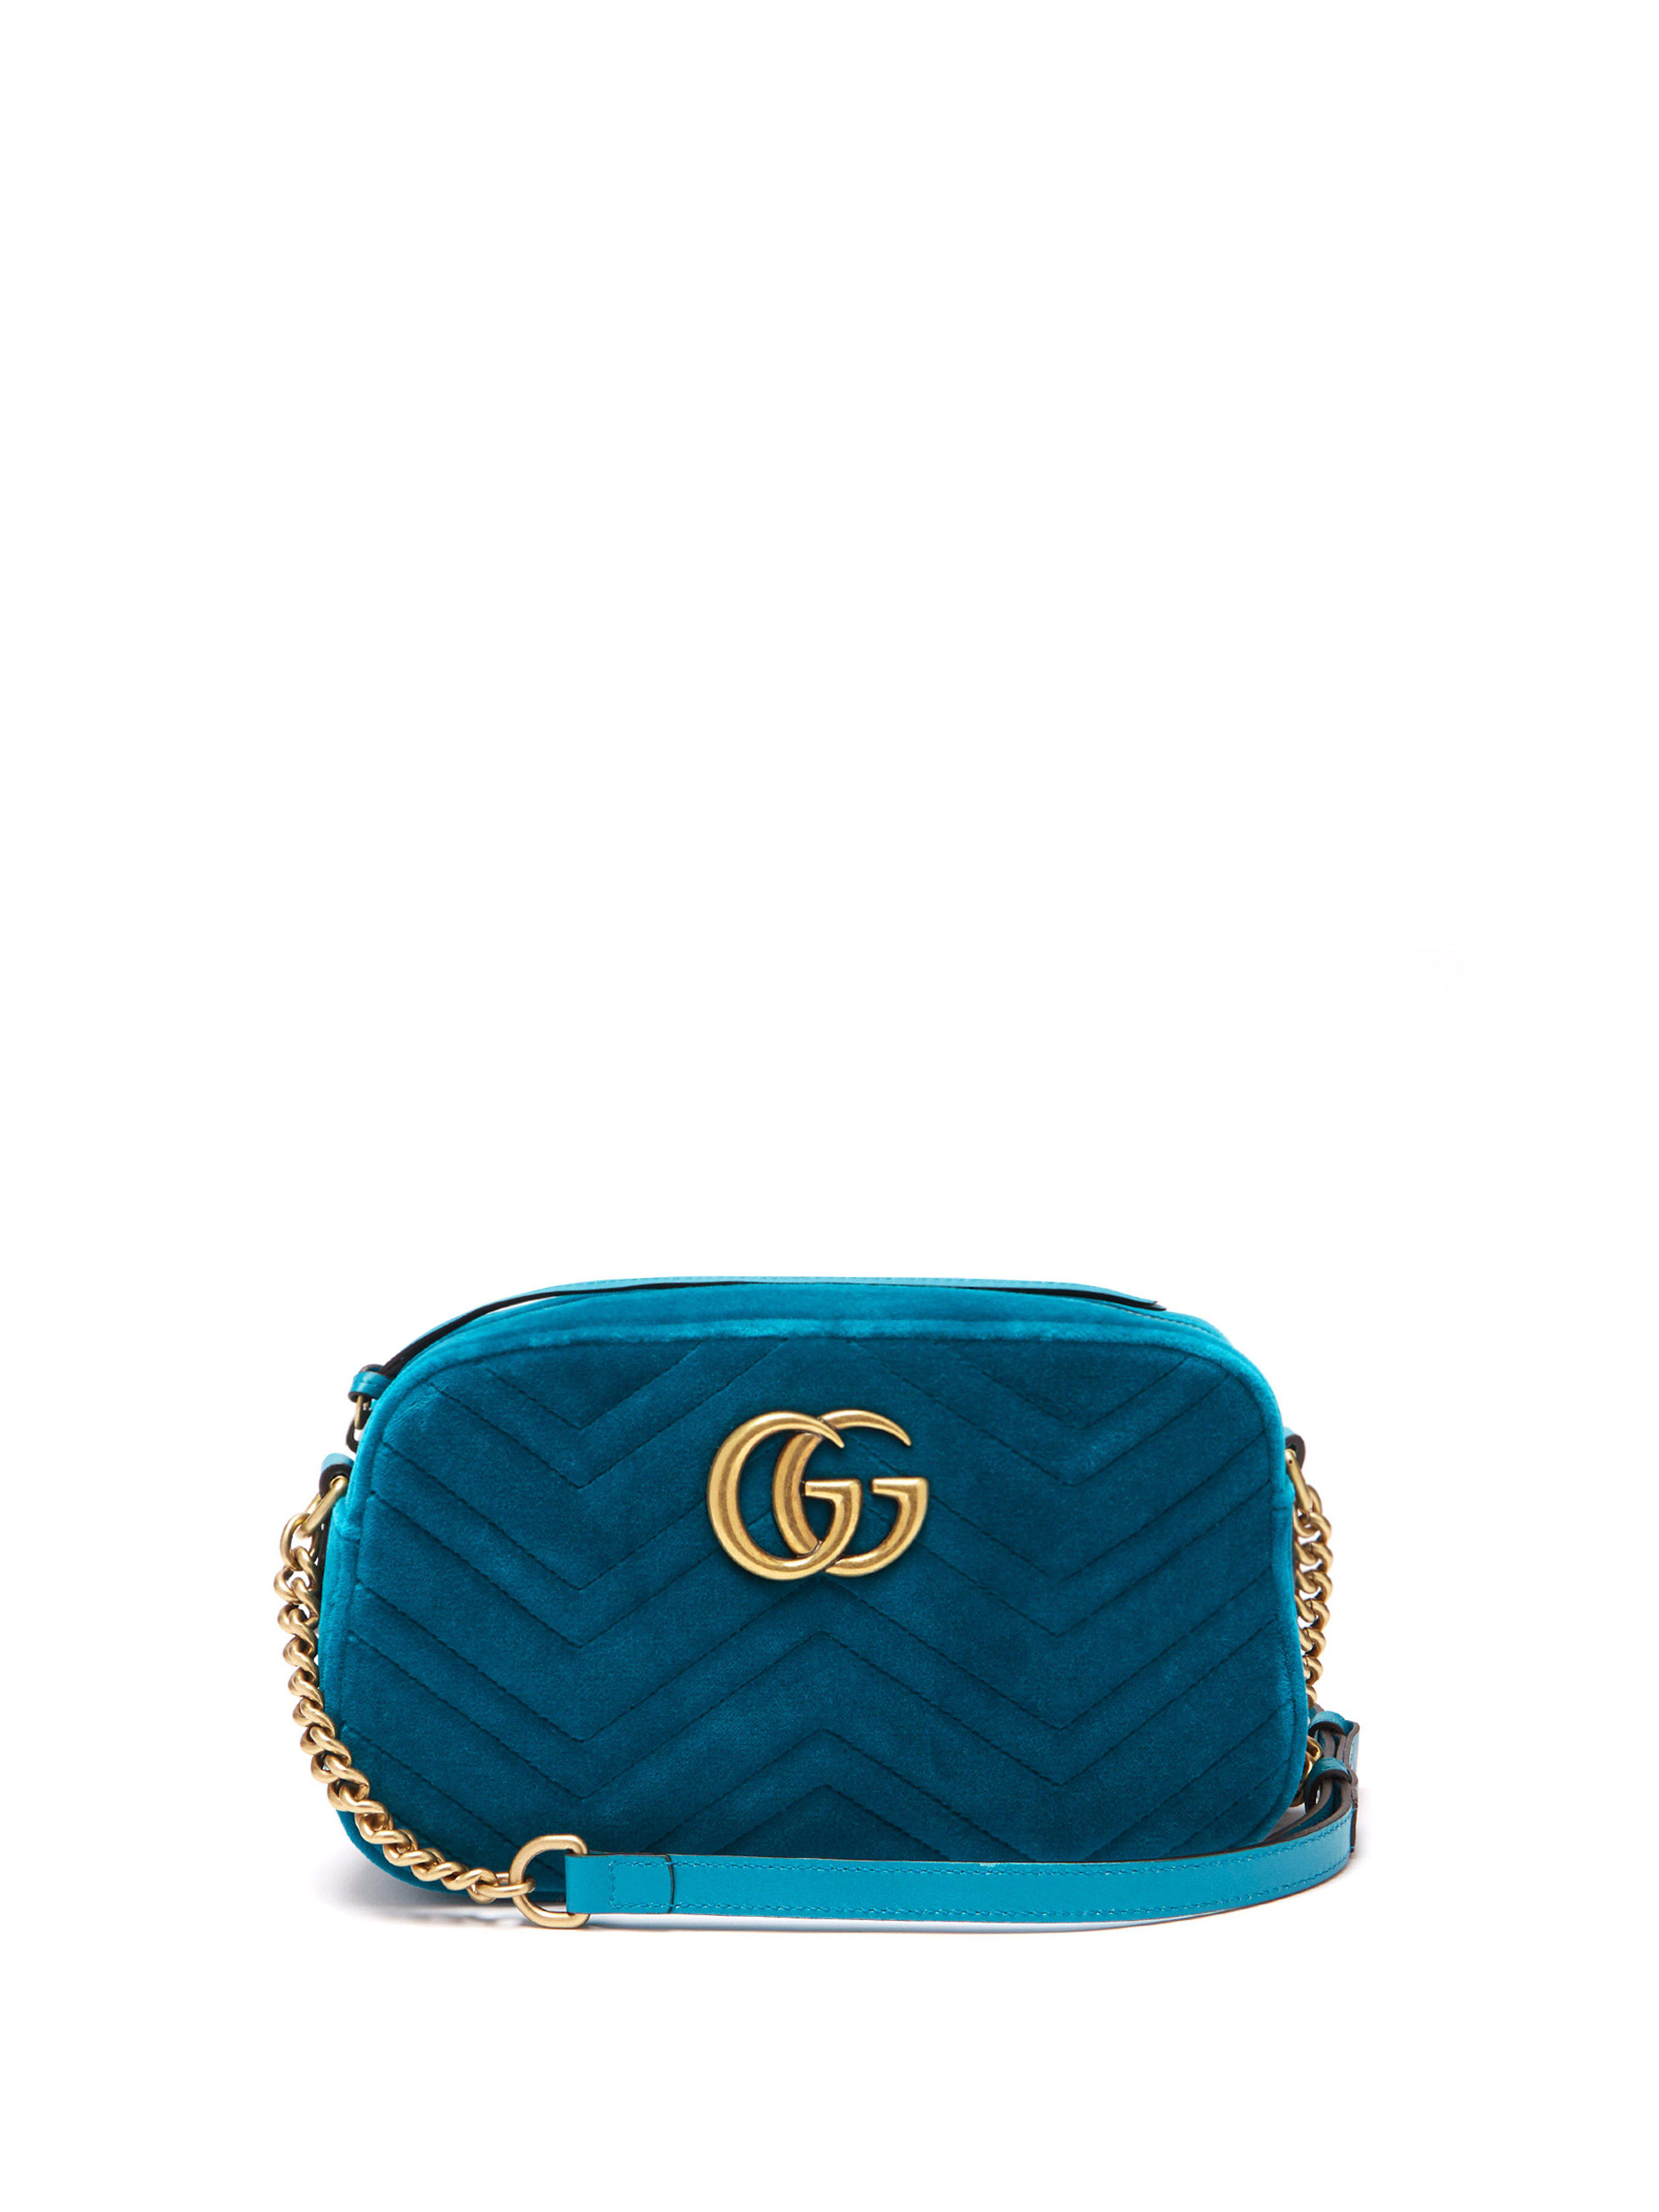 9a66c0a2b278b Gucci Gg Marmont Quilted Velvet Cross Body Bag in Blue - Lyst